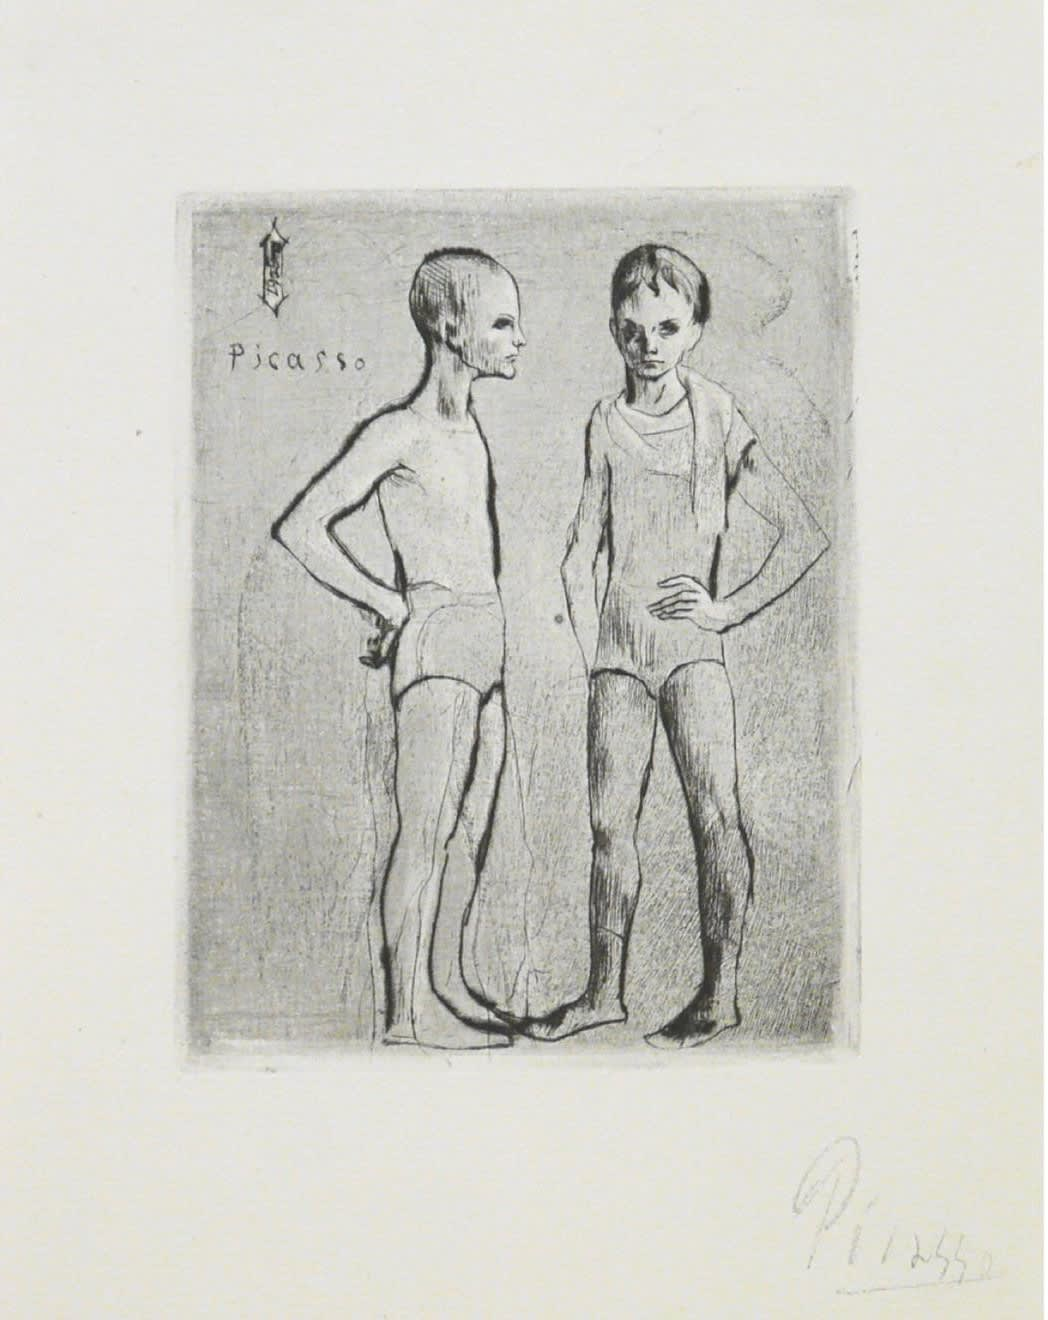 Pablo Picasso: Les Deux Saltimbanques (Bloch 5), 1905, drypoint, 8 3/8 x 5 1/2 inches